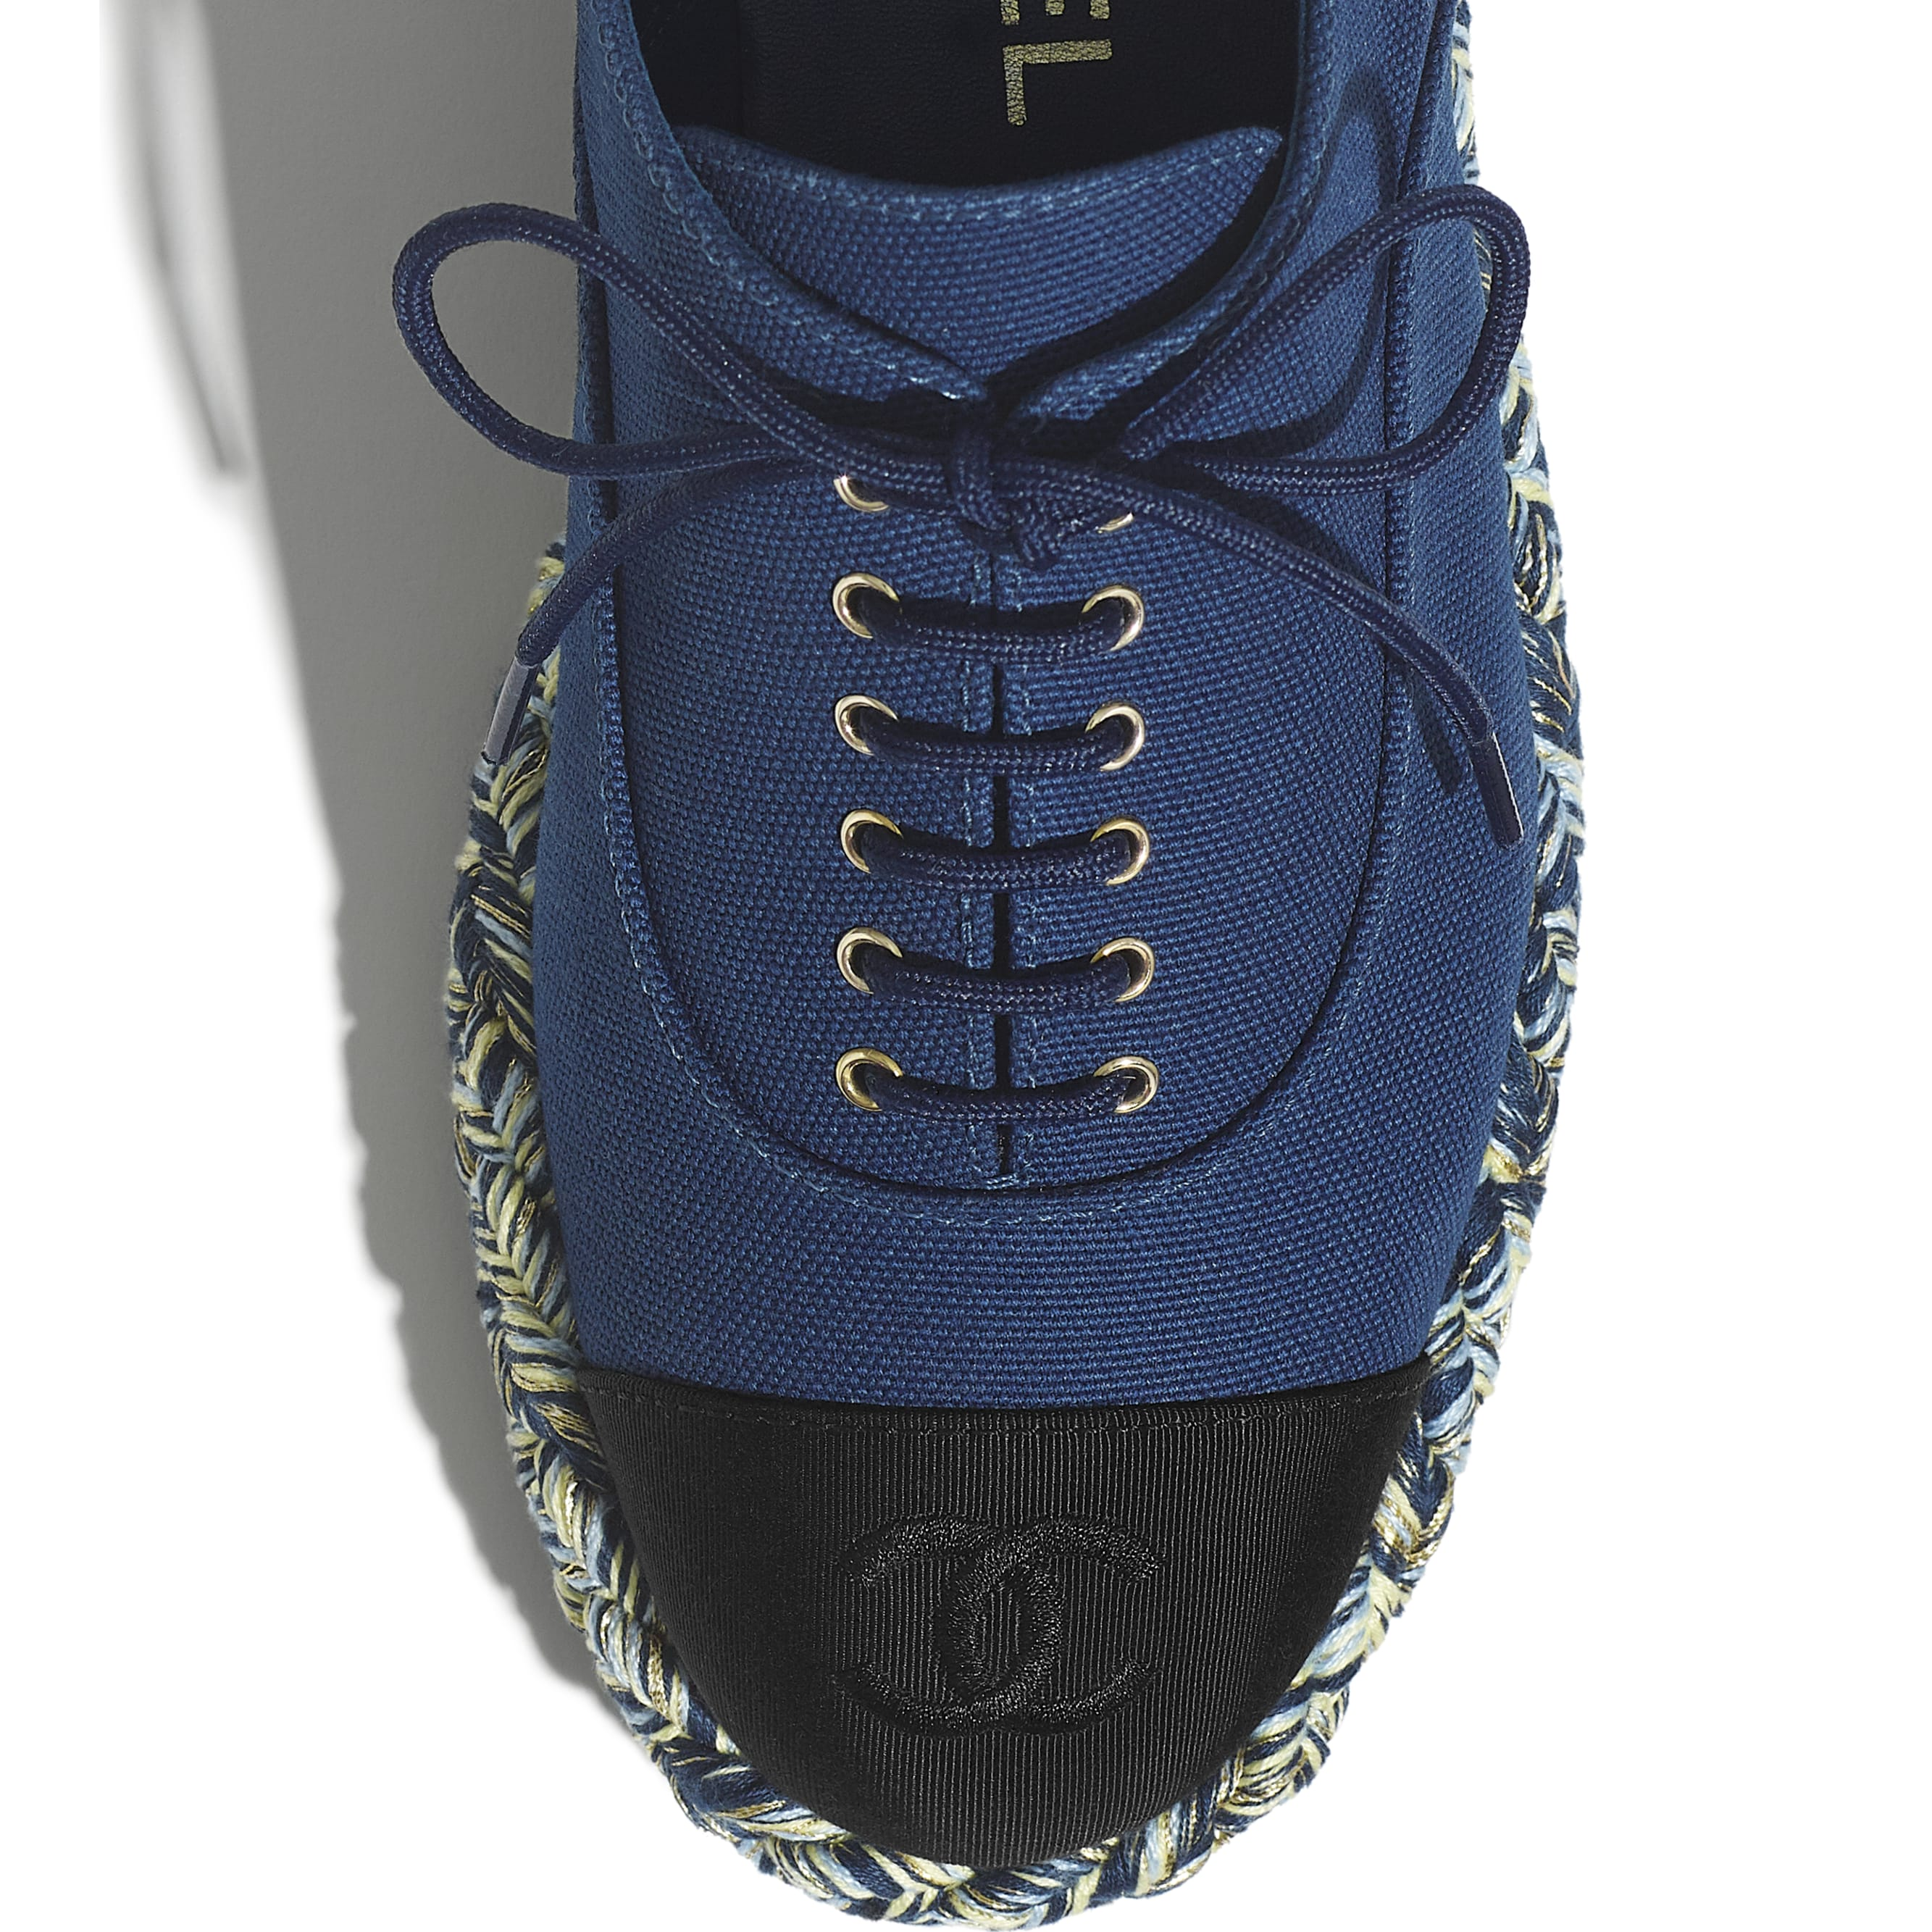 Lace-Ups - Navy Blue & Black - Cotton & Grosgrain - CHANEL - Extra view - see standard sized version